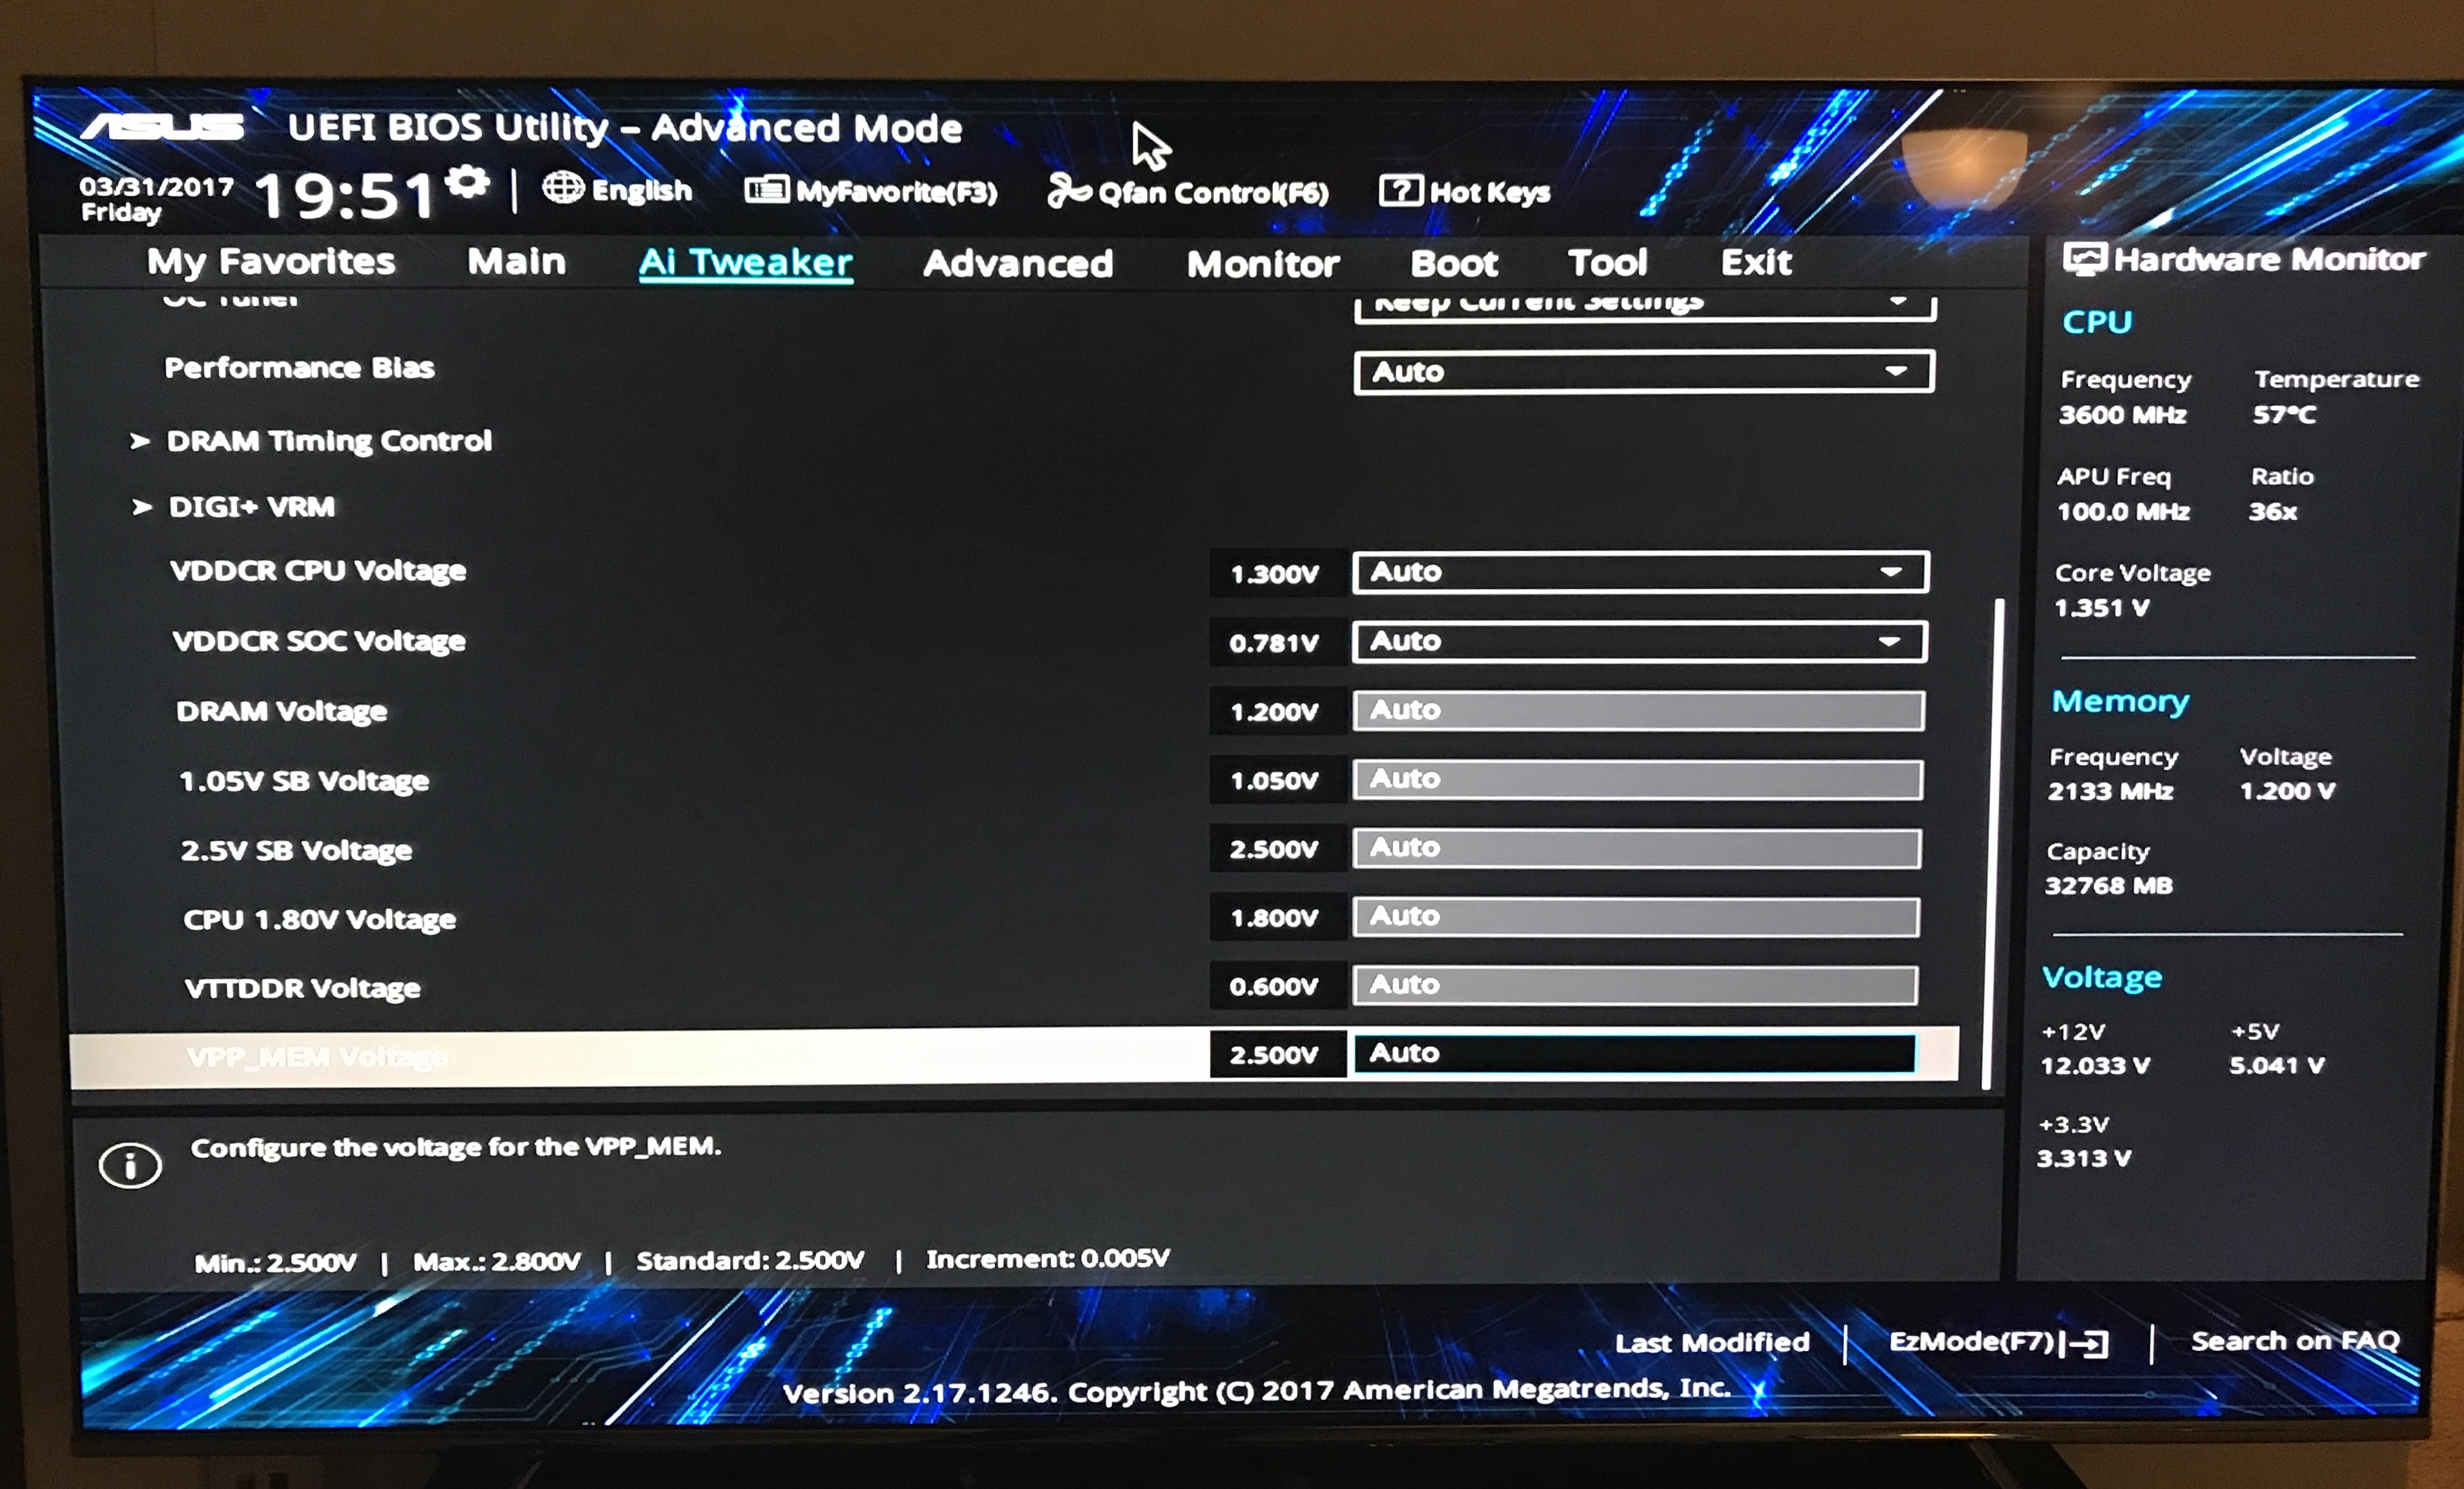 AMD RyZen 1800x 57-62 degrees Celsius when idle with H100i